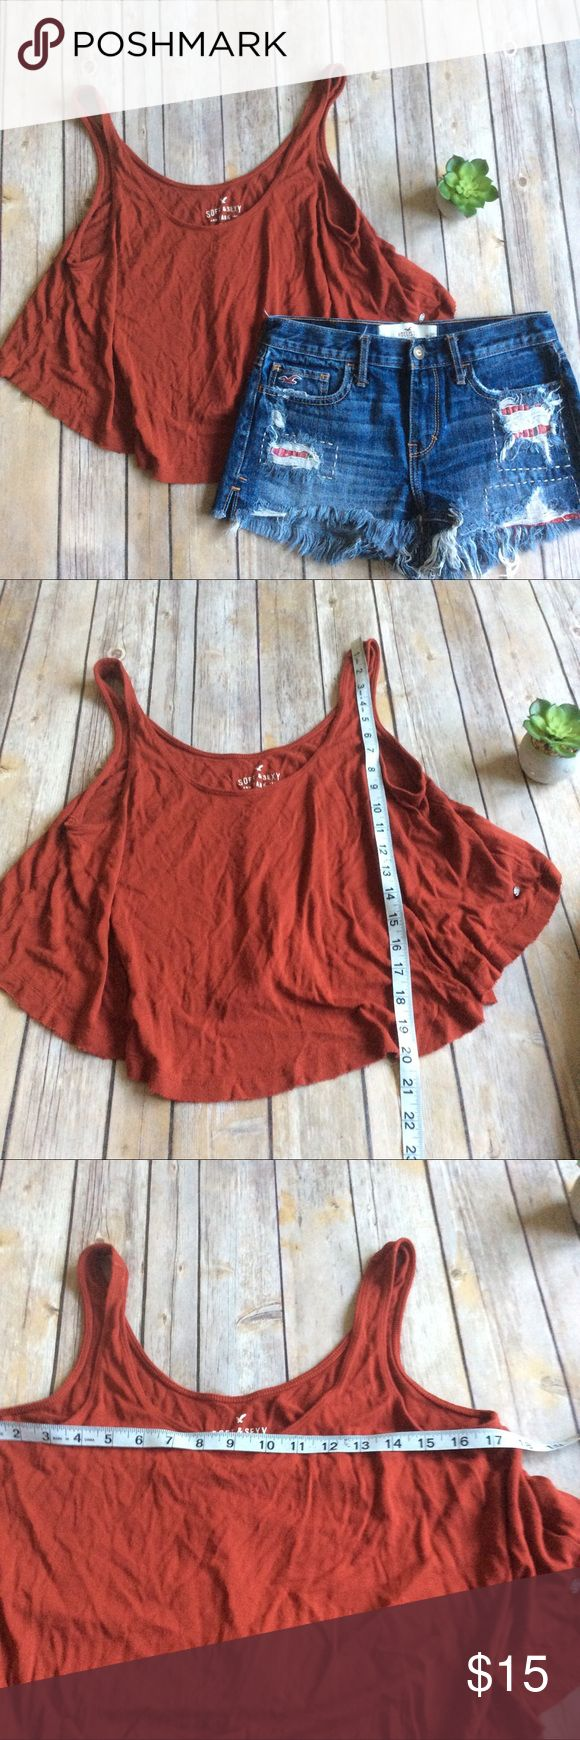 American Eagle Soft & Sexy Cropped Tank sz Medium Like new rust red loose fit cropped Tank from American Eagle ❌no trades, holds, or lowball offers. ✅Clean and smoke free home, quick shipping, bundle discount, always! 🎁Free gift with $15+ bundle. American Eagle Outfitters Tops